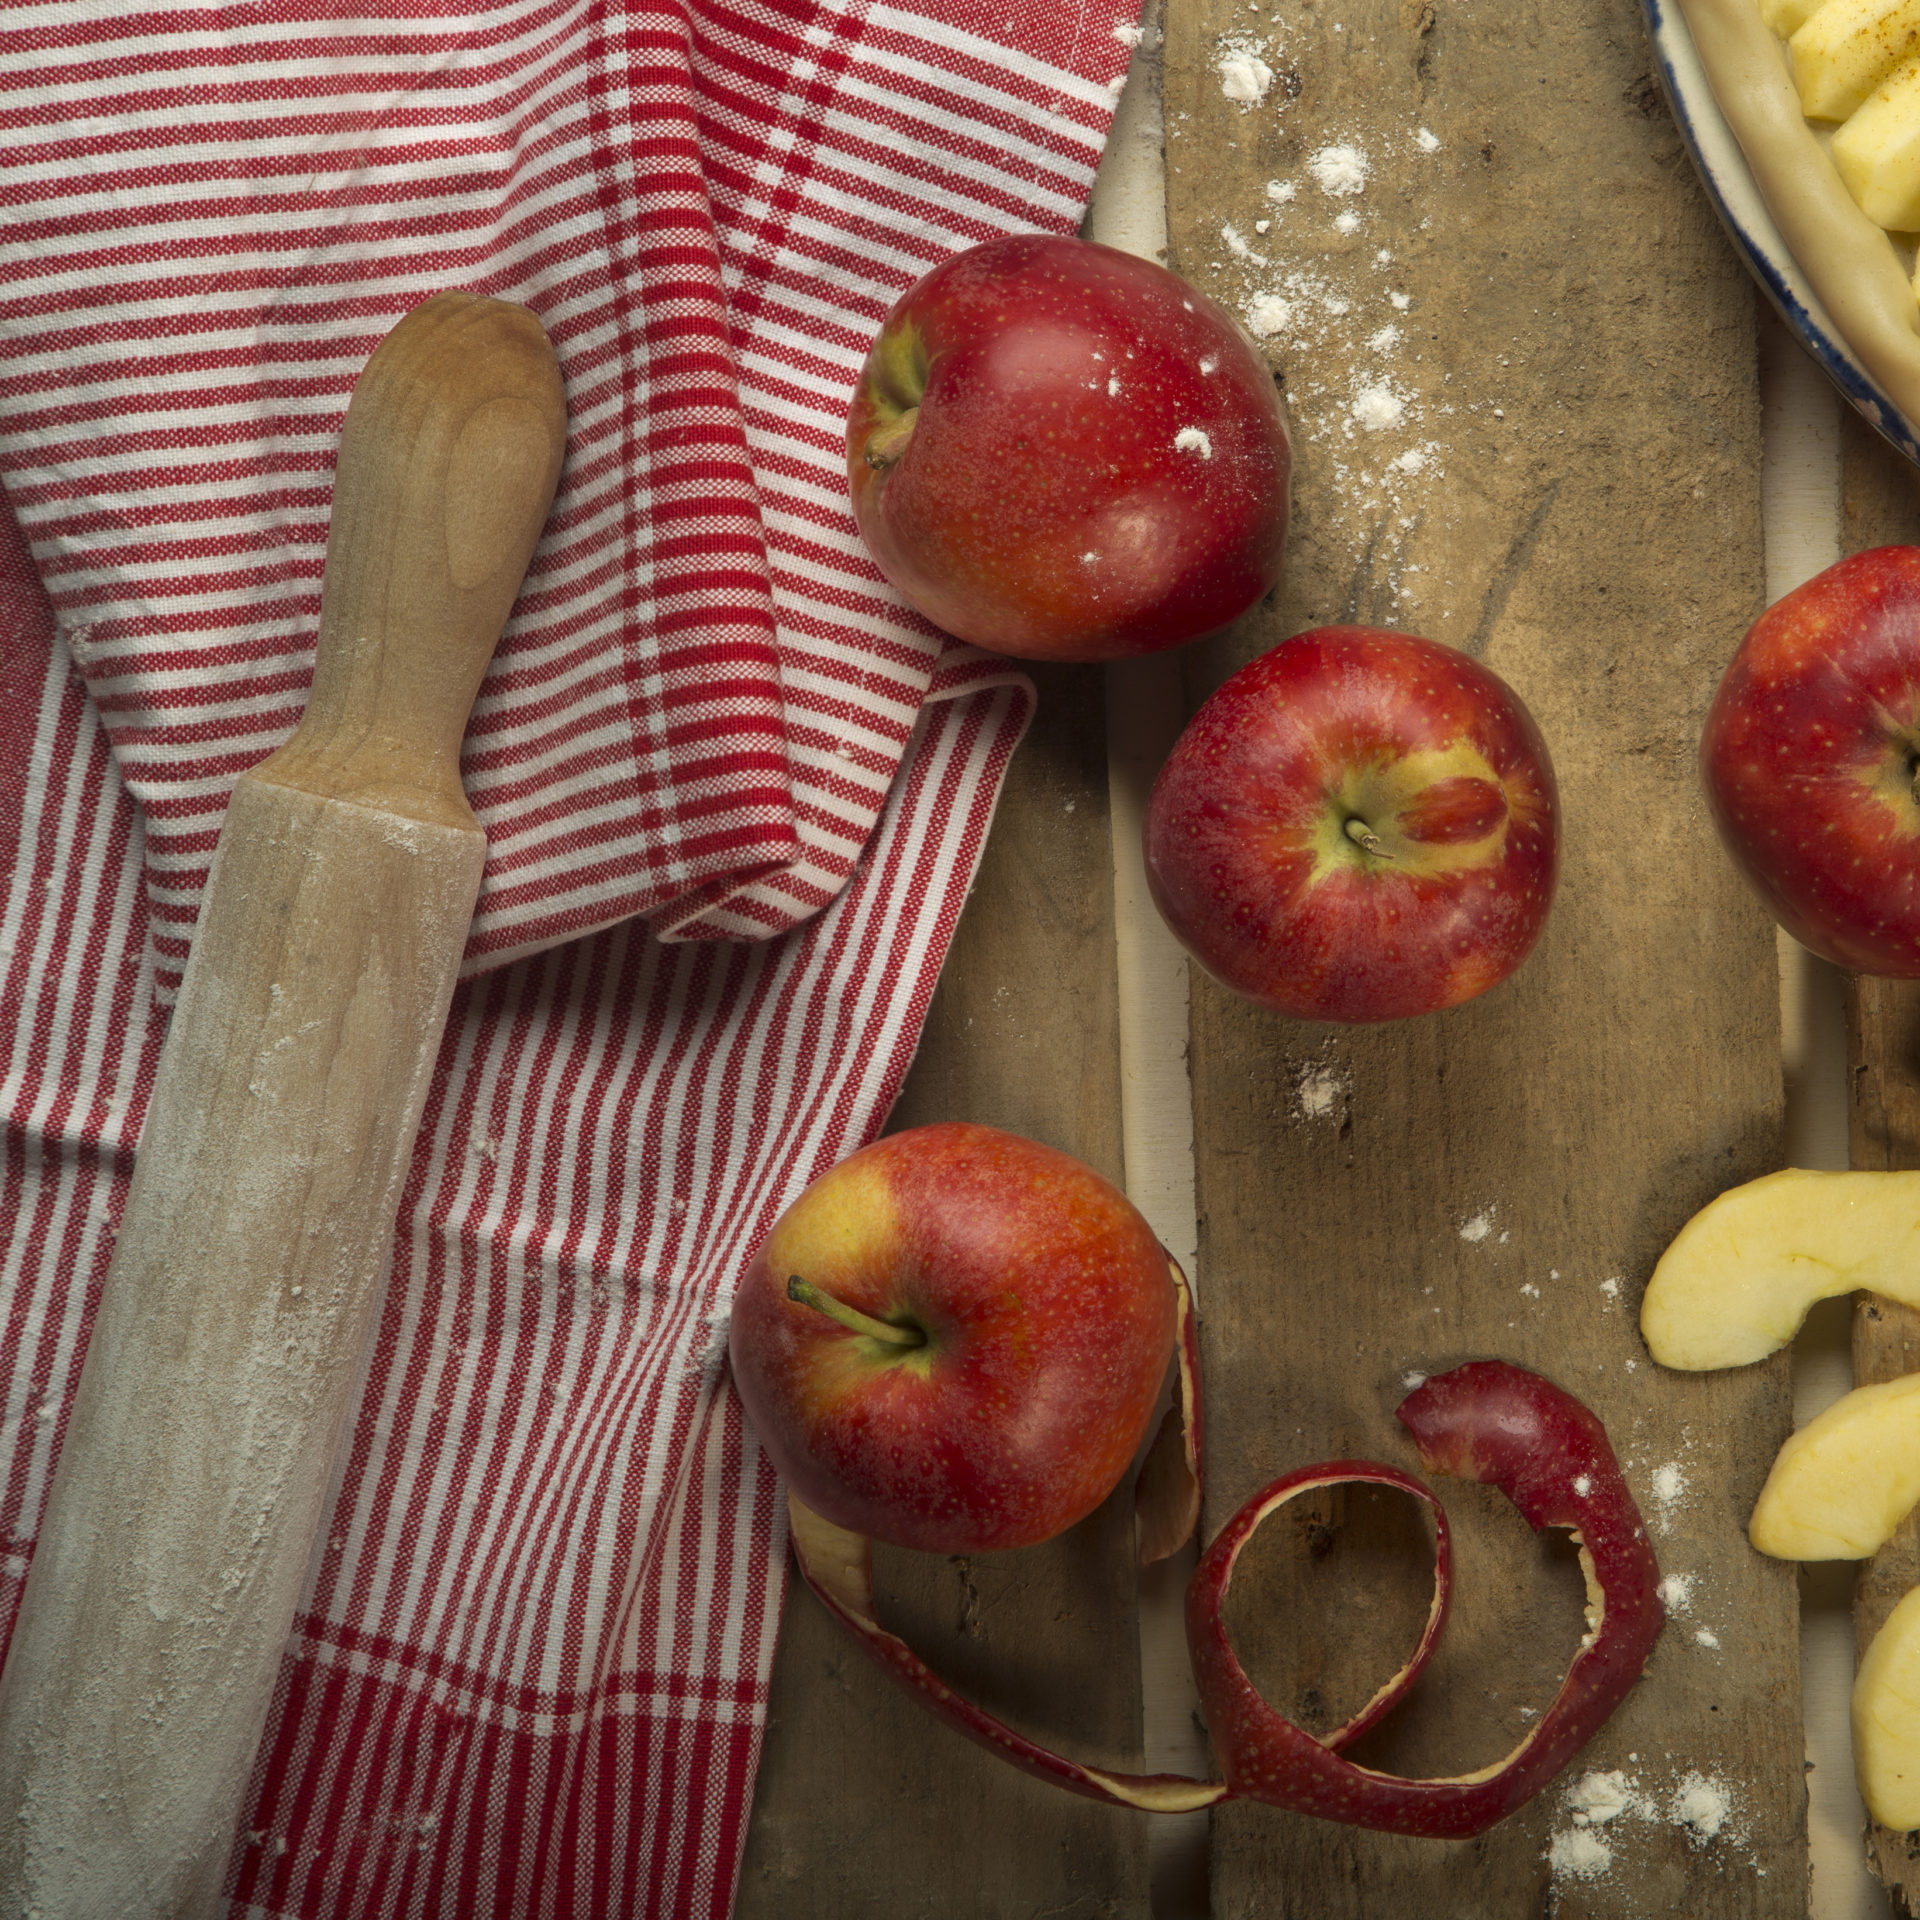 apples and apple slices